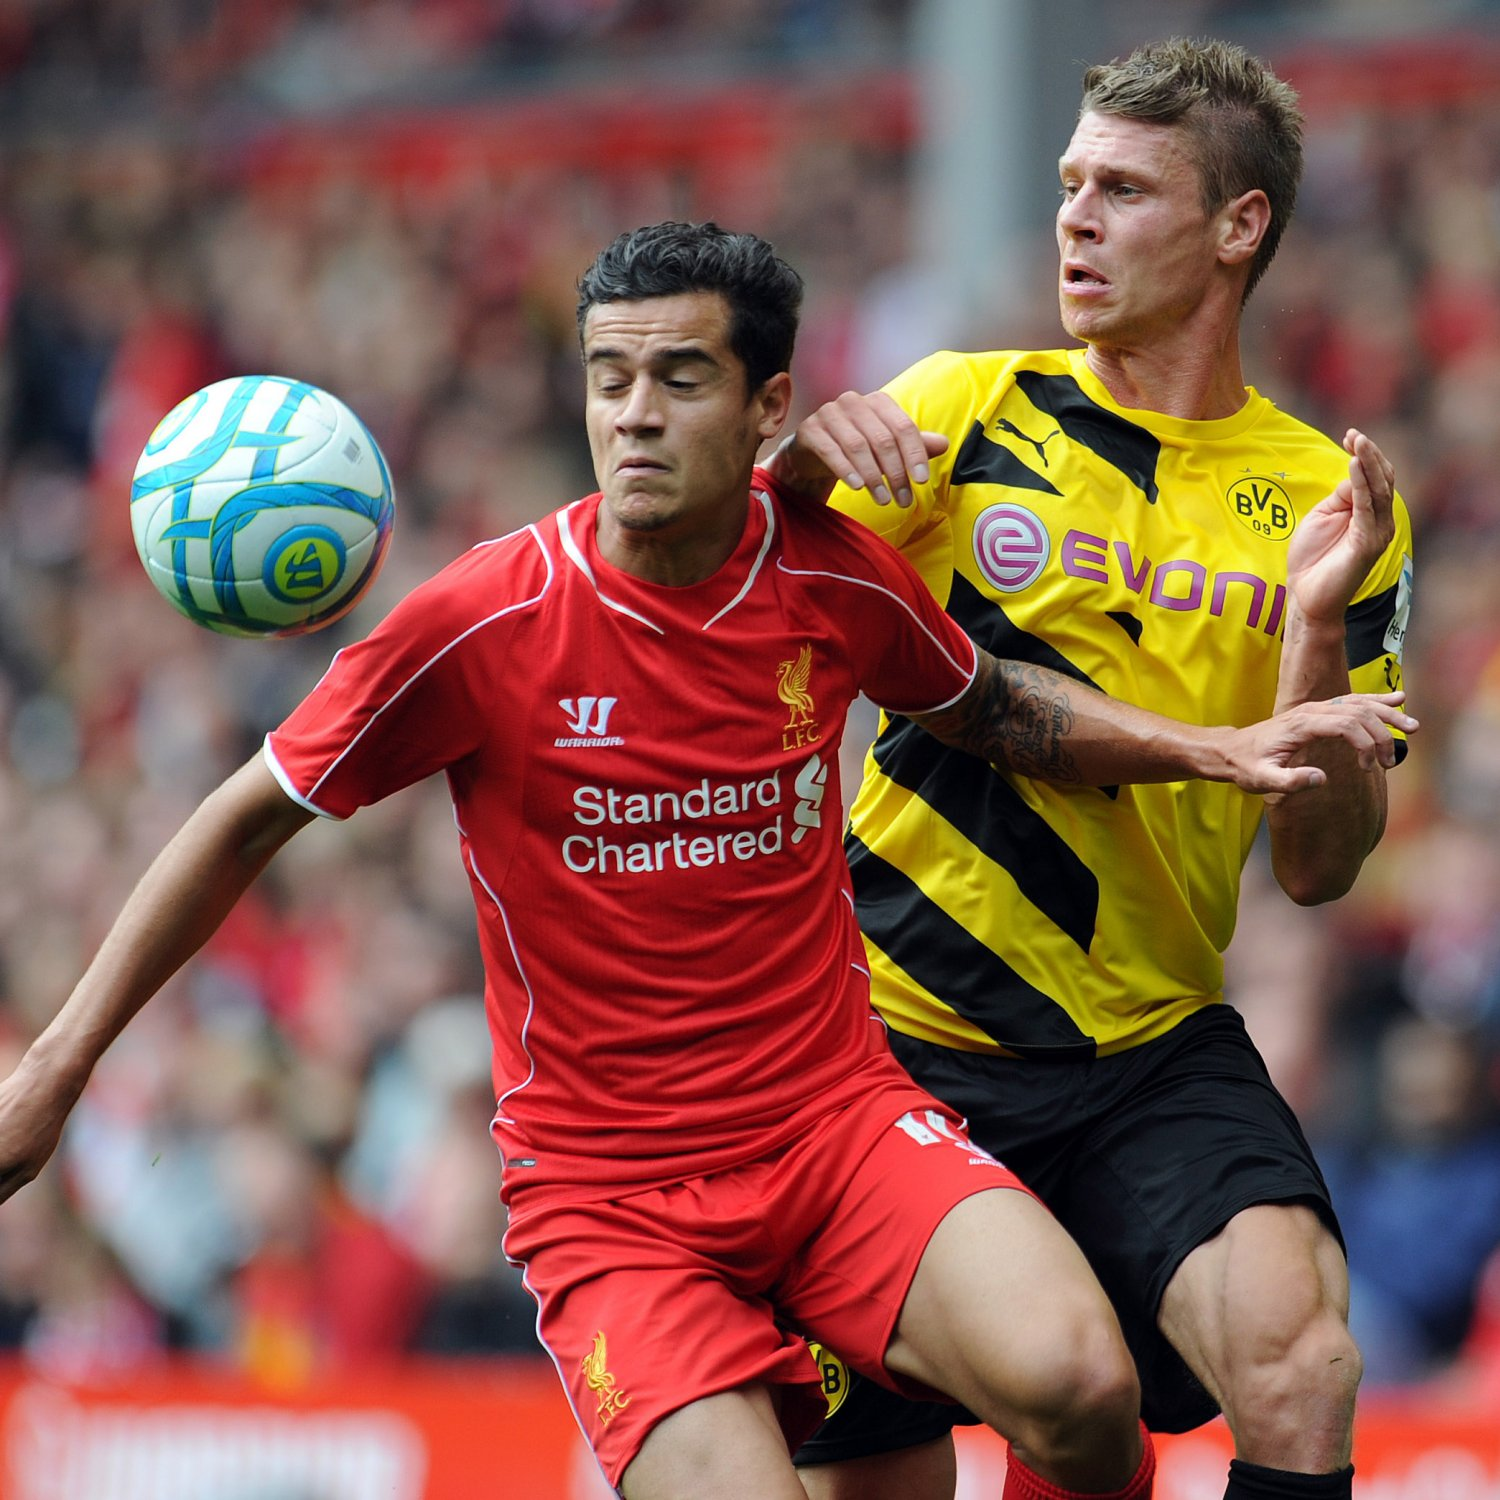 liverpool vs dortmund - photo #22